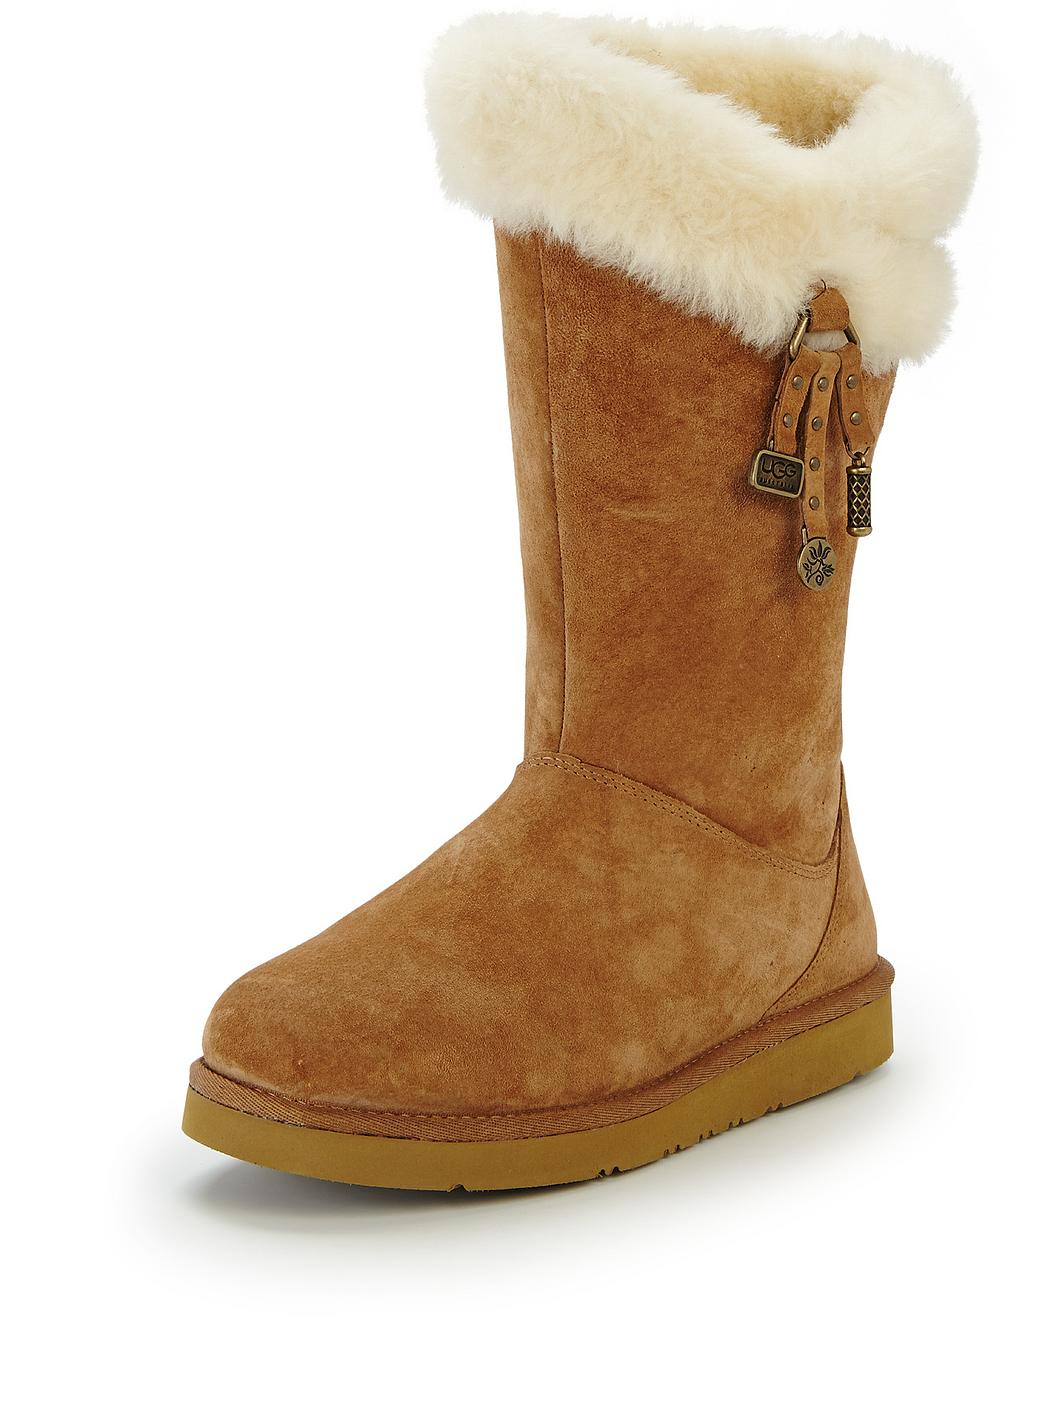 cheapest ugg boots liverpool